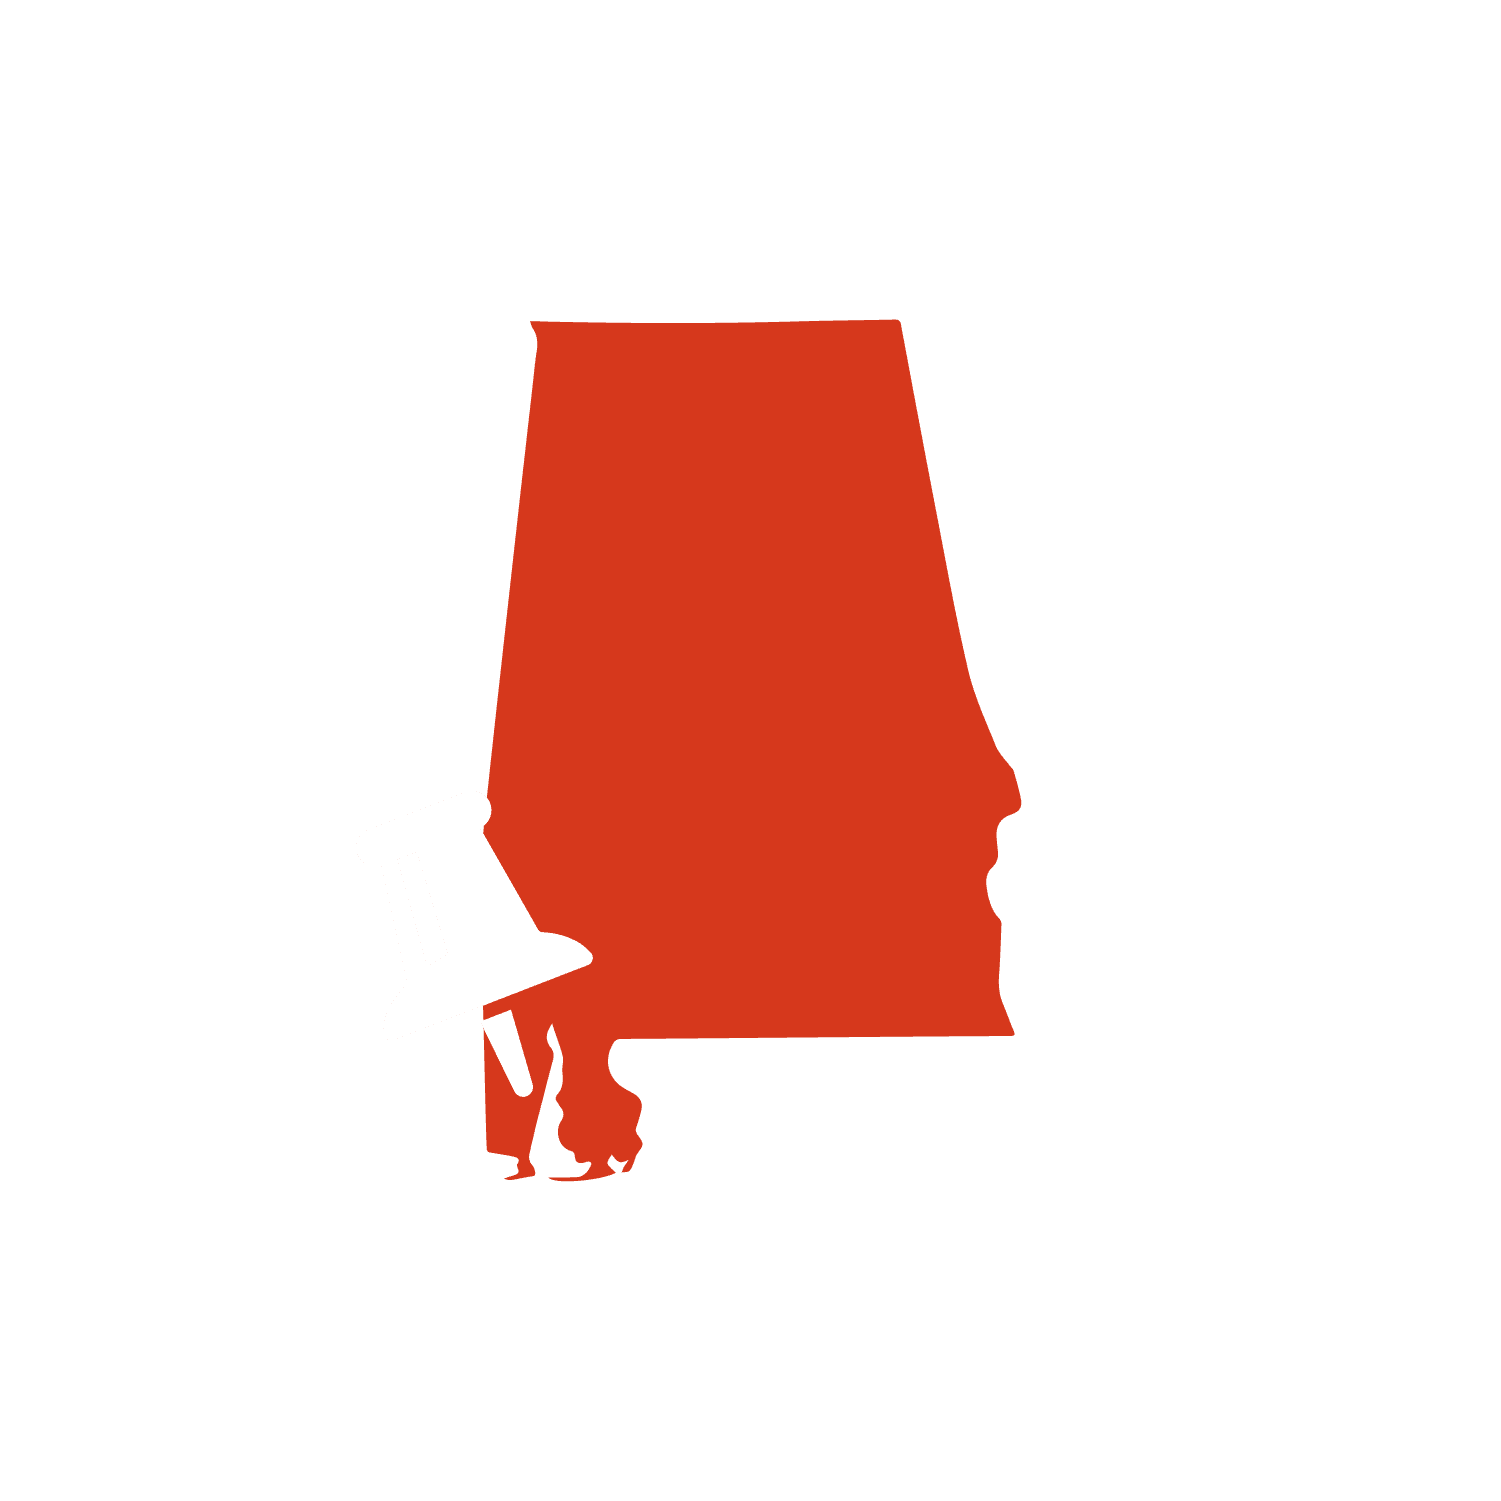 Cypress Employment Services Locations Mobile Alabama State With Pin on Location